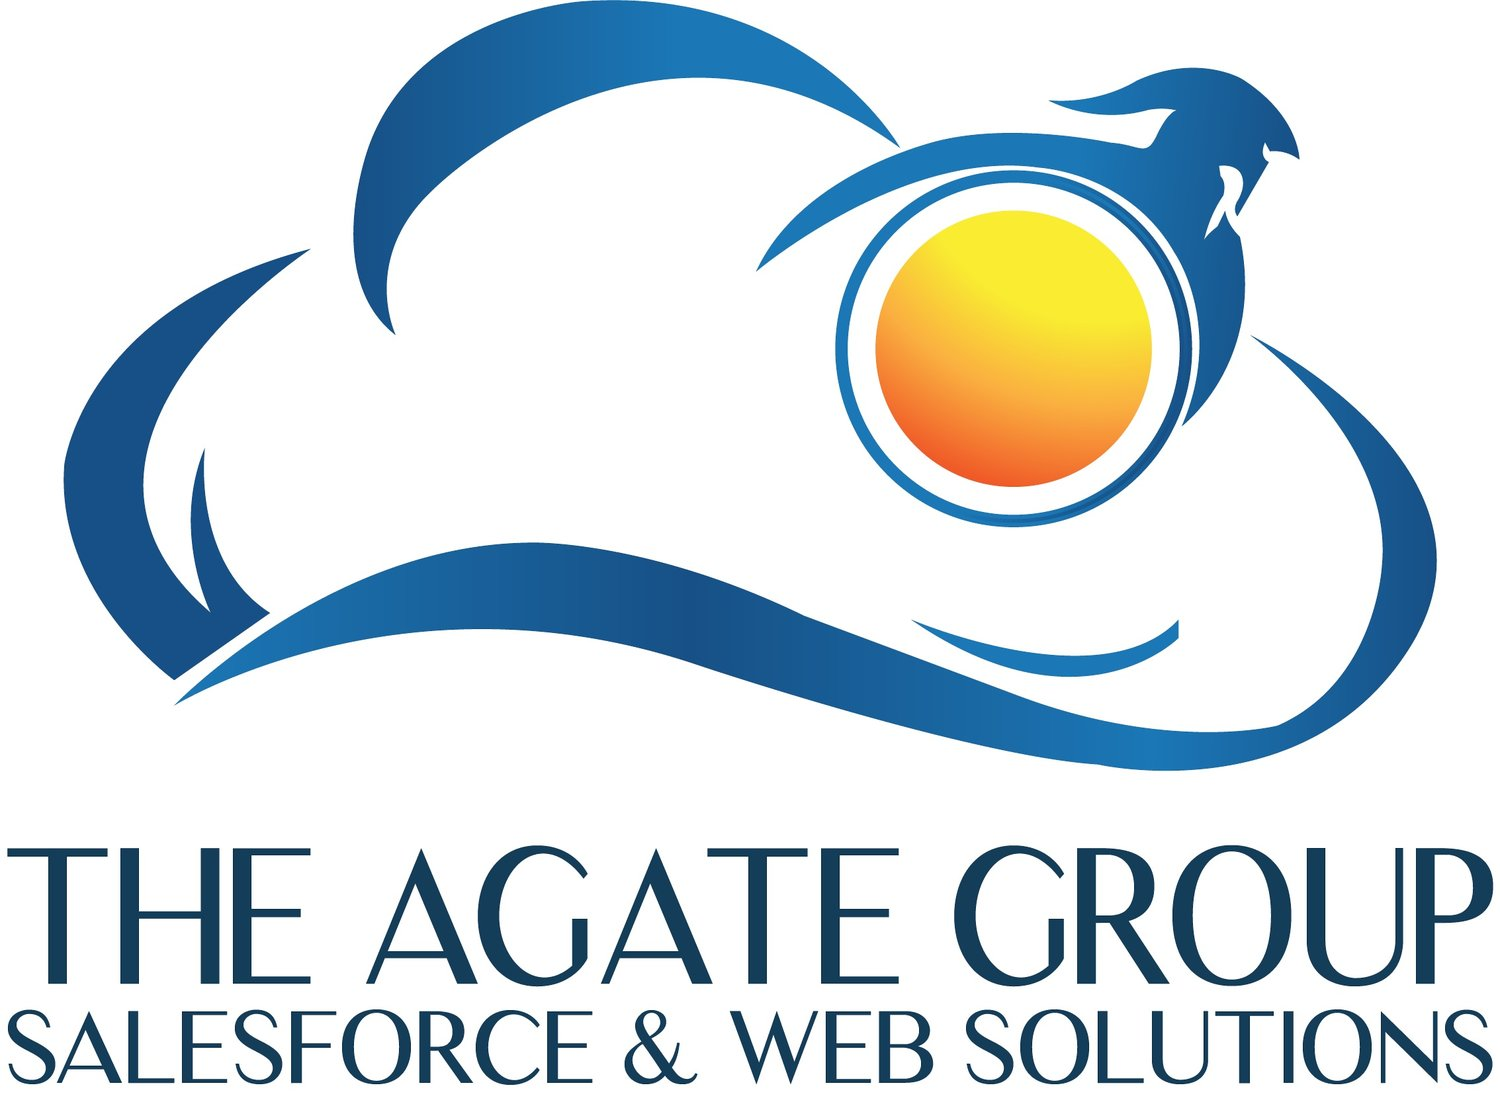 The Agate Group